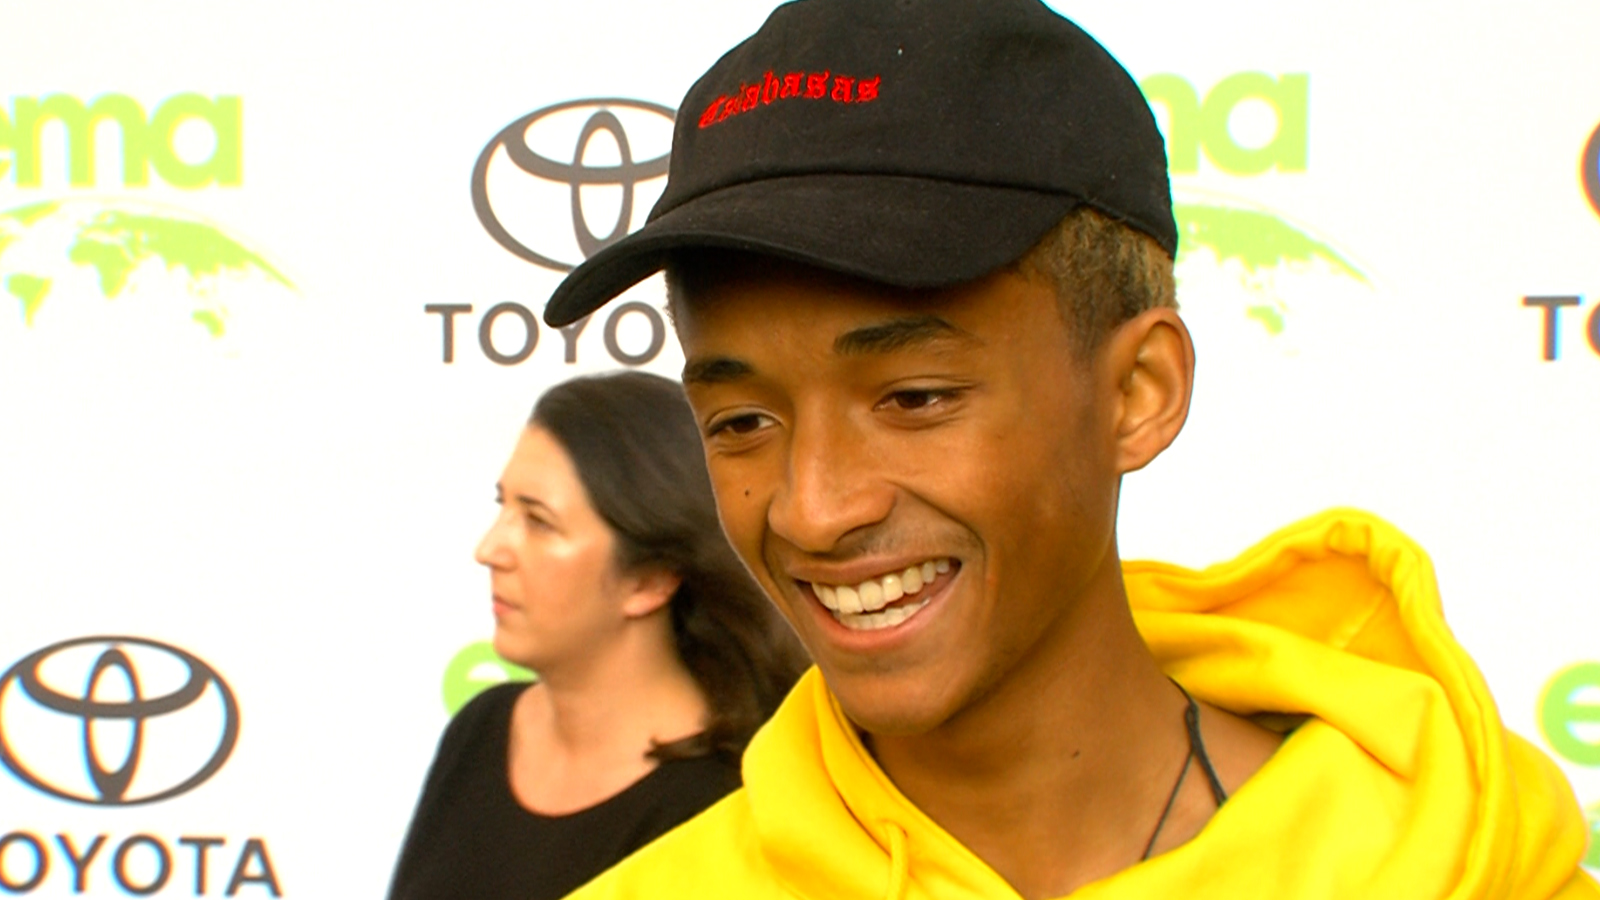 180523_3729640_Jaden_Smith_Shares_How_To_Tackle_Environment.jpg